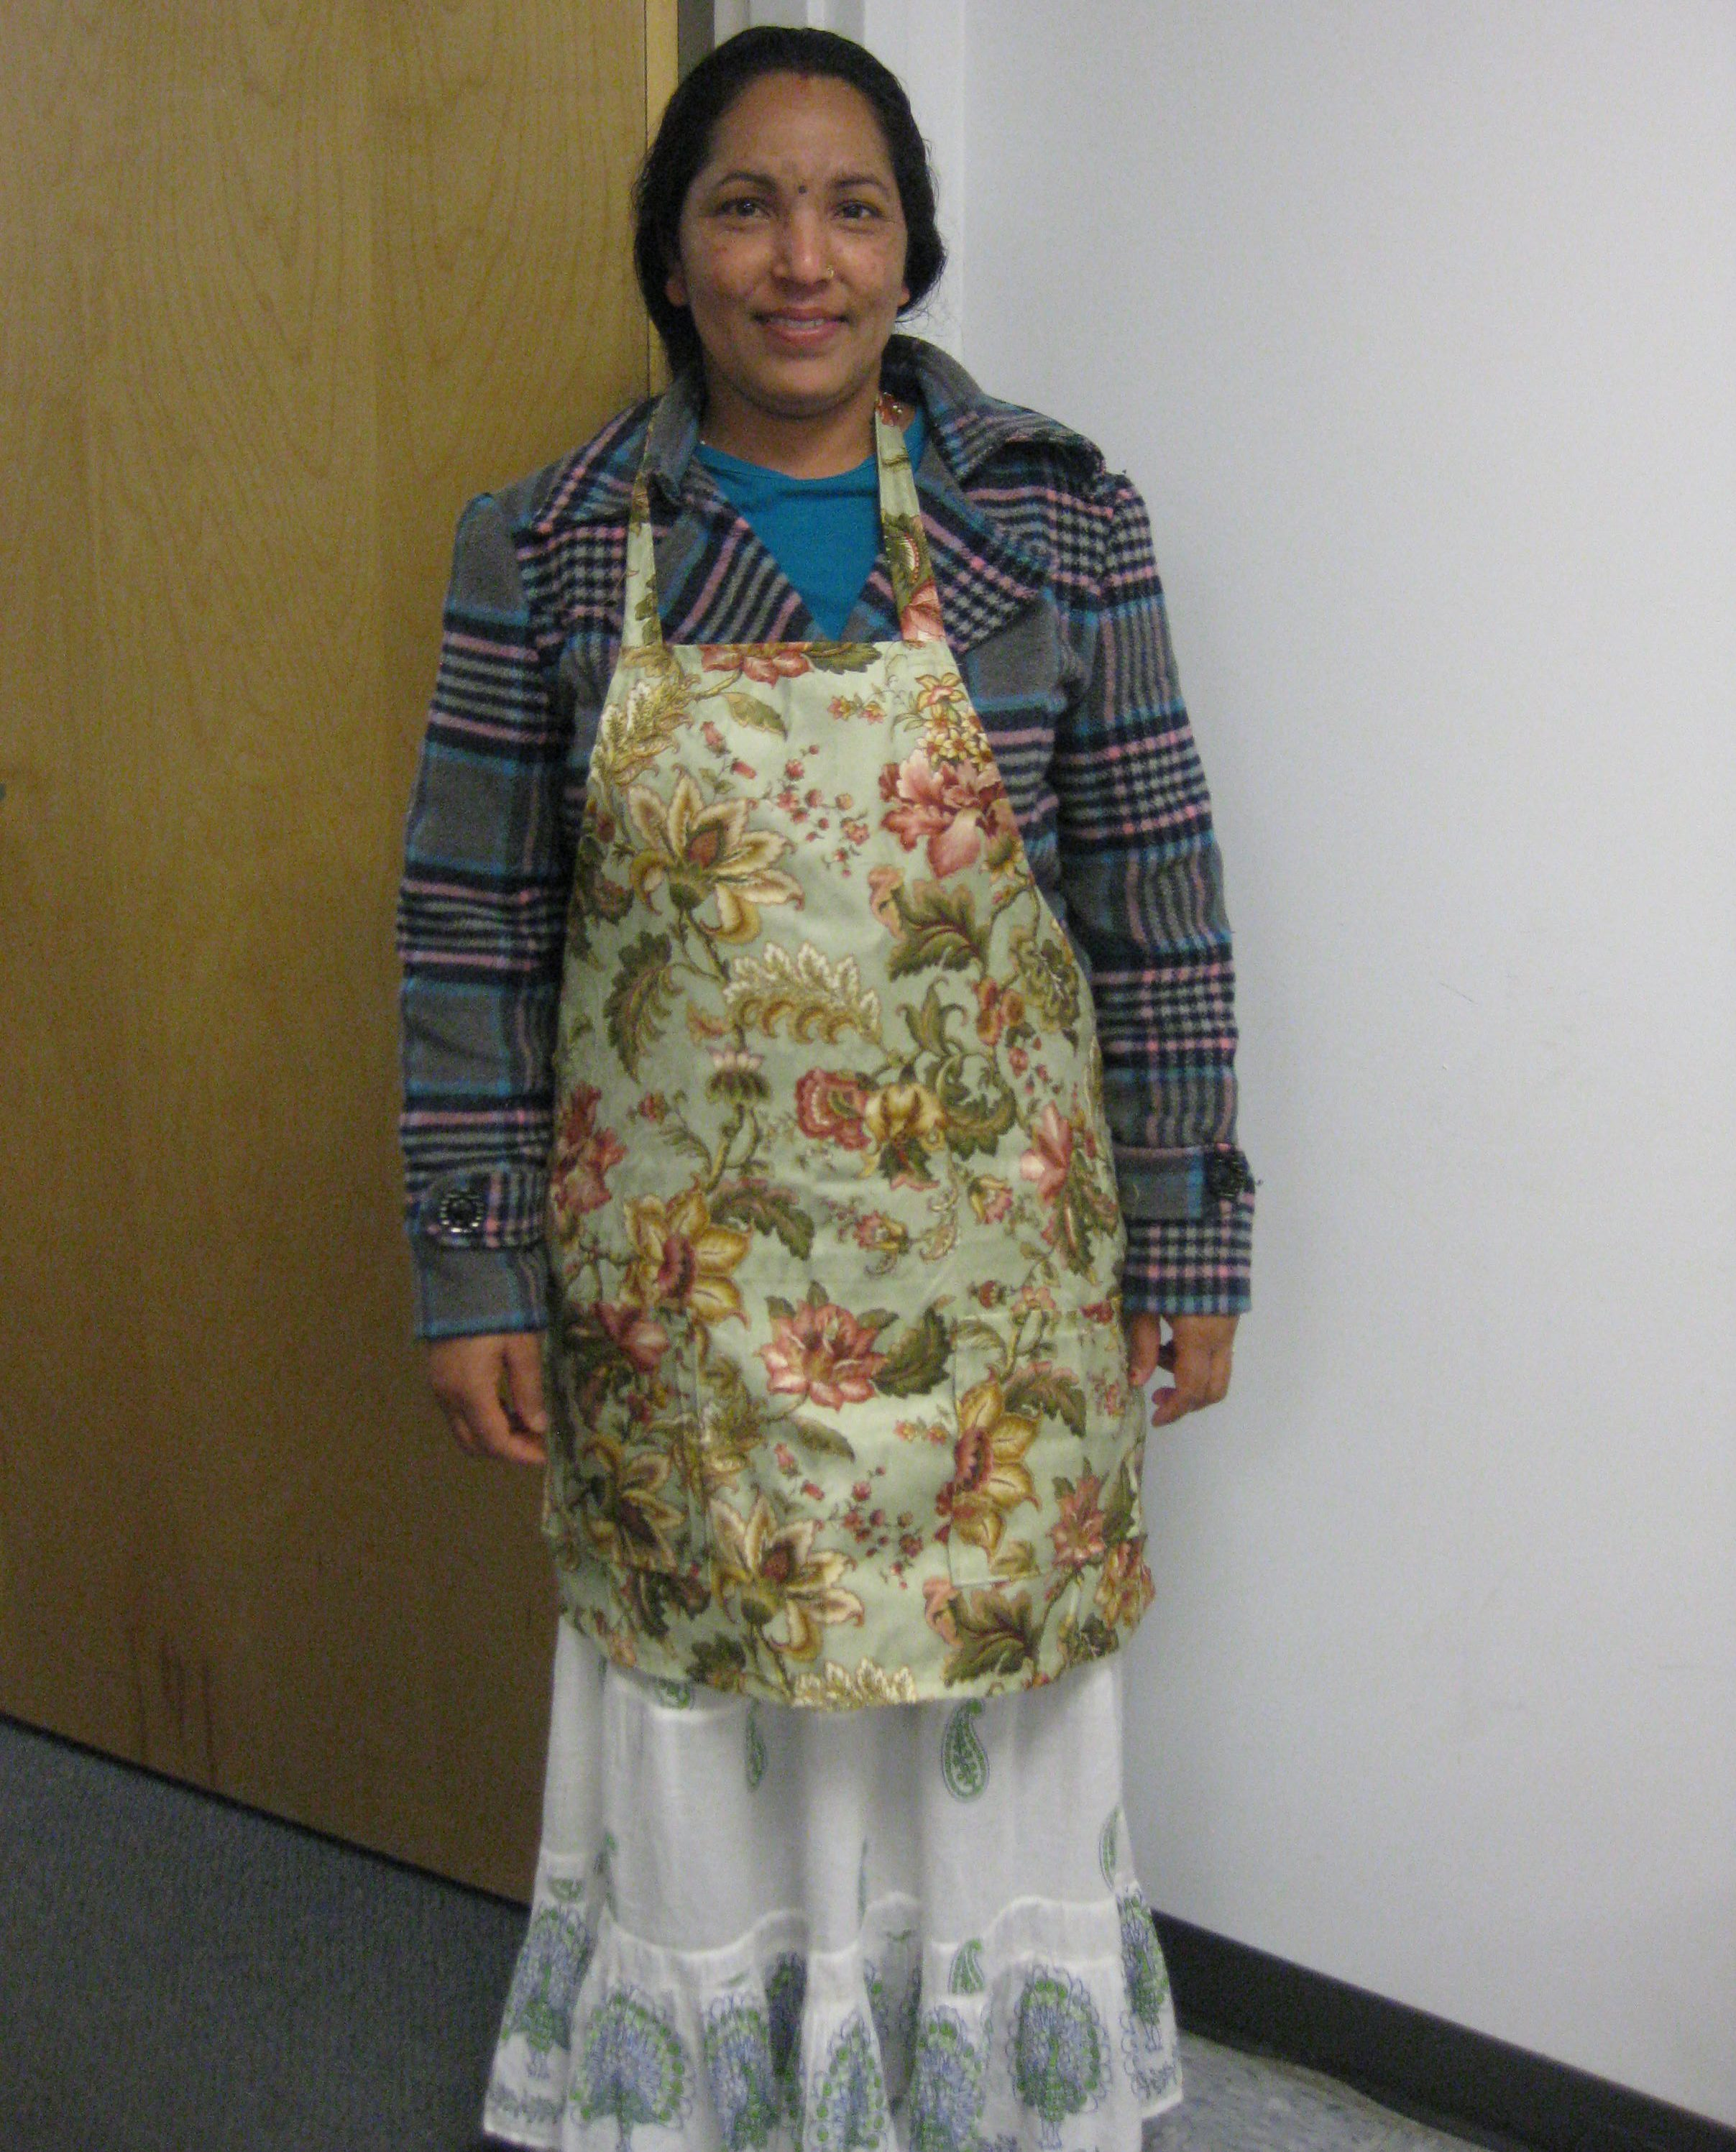 Sewing class - a student and the apron she made